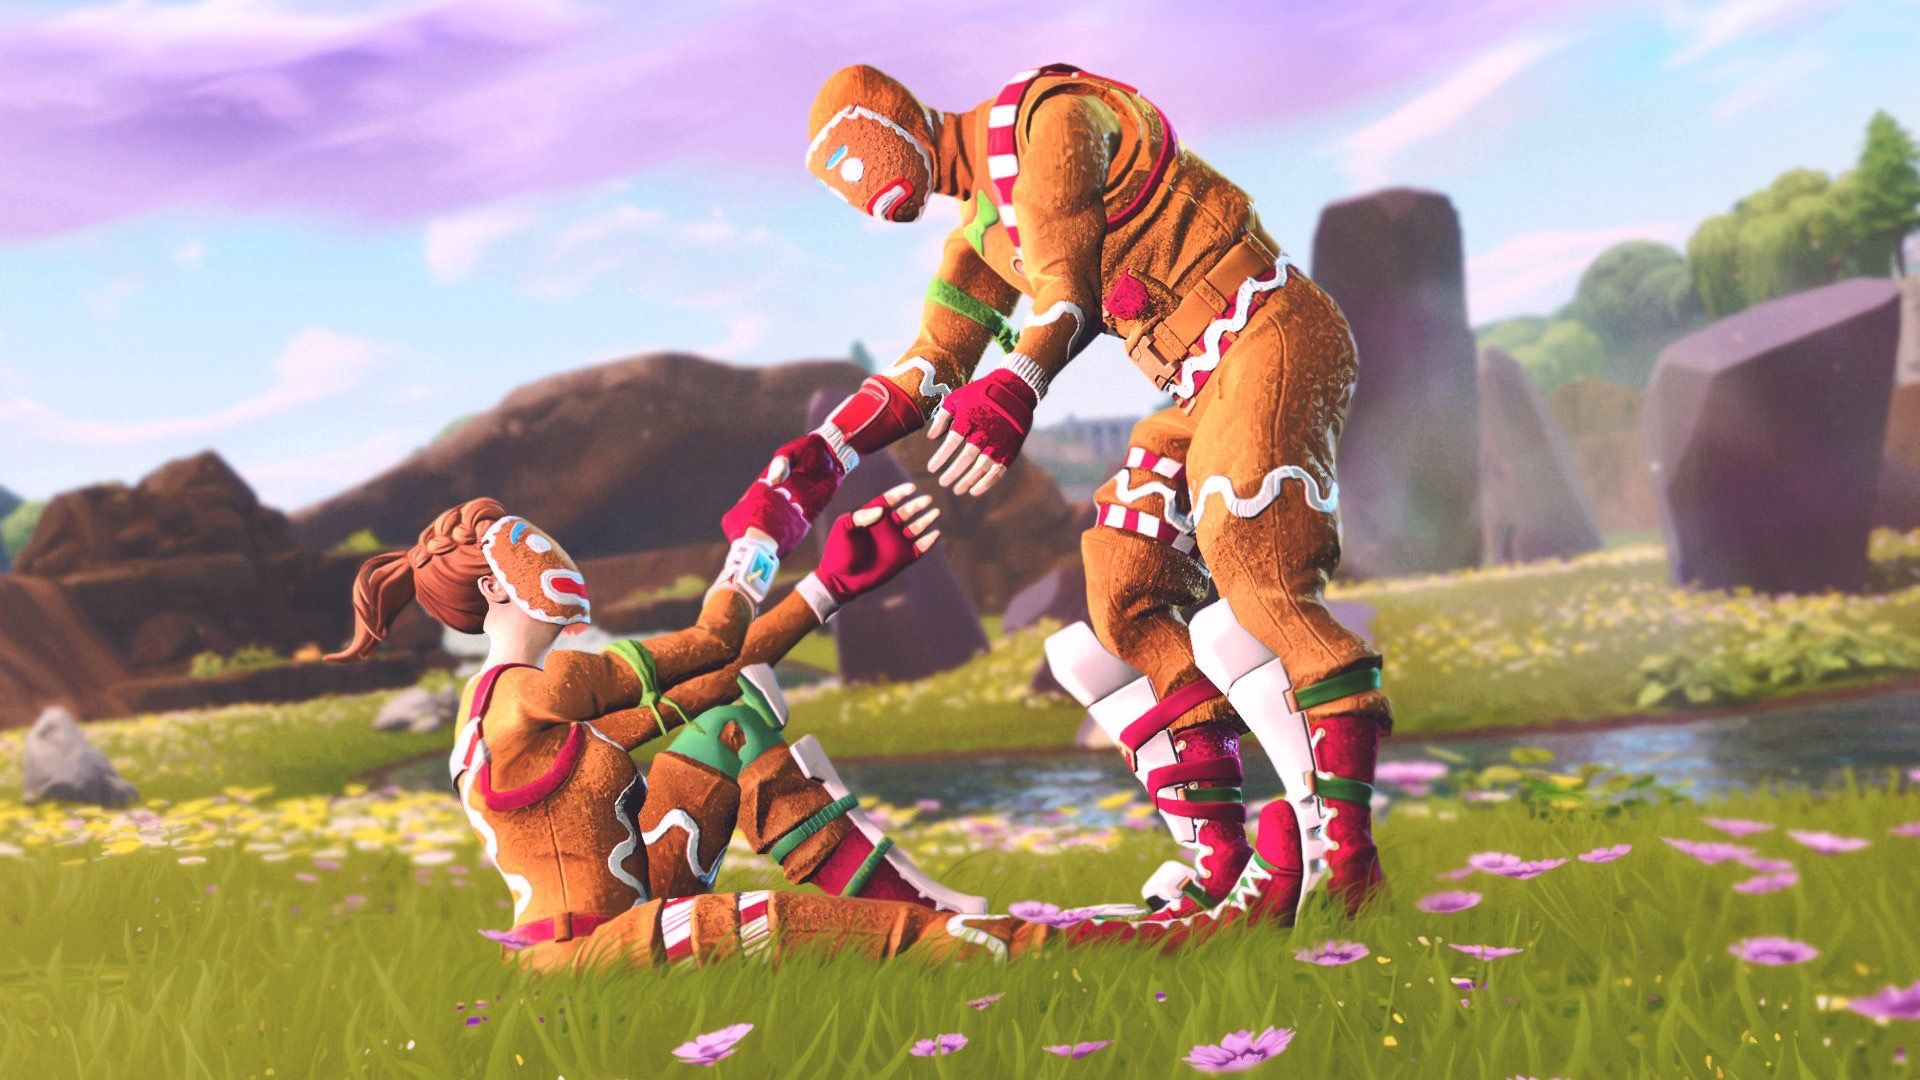 Pin By Jean Kevin On Fortnite Best Gaming Wallpapers Gaming Wallpapers Fortnite